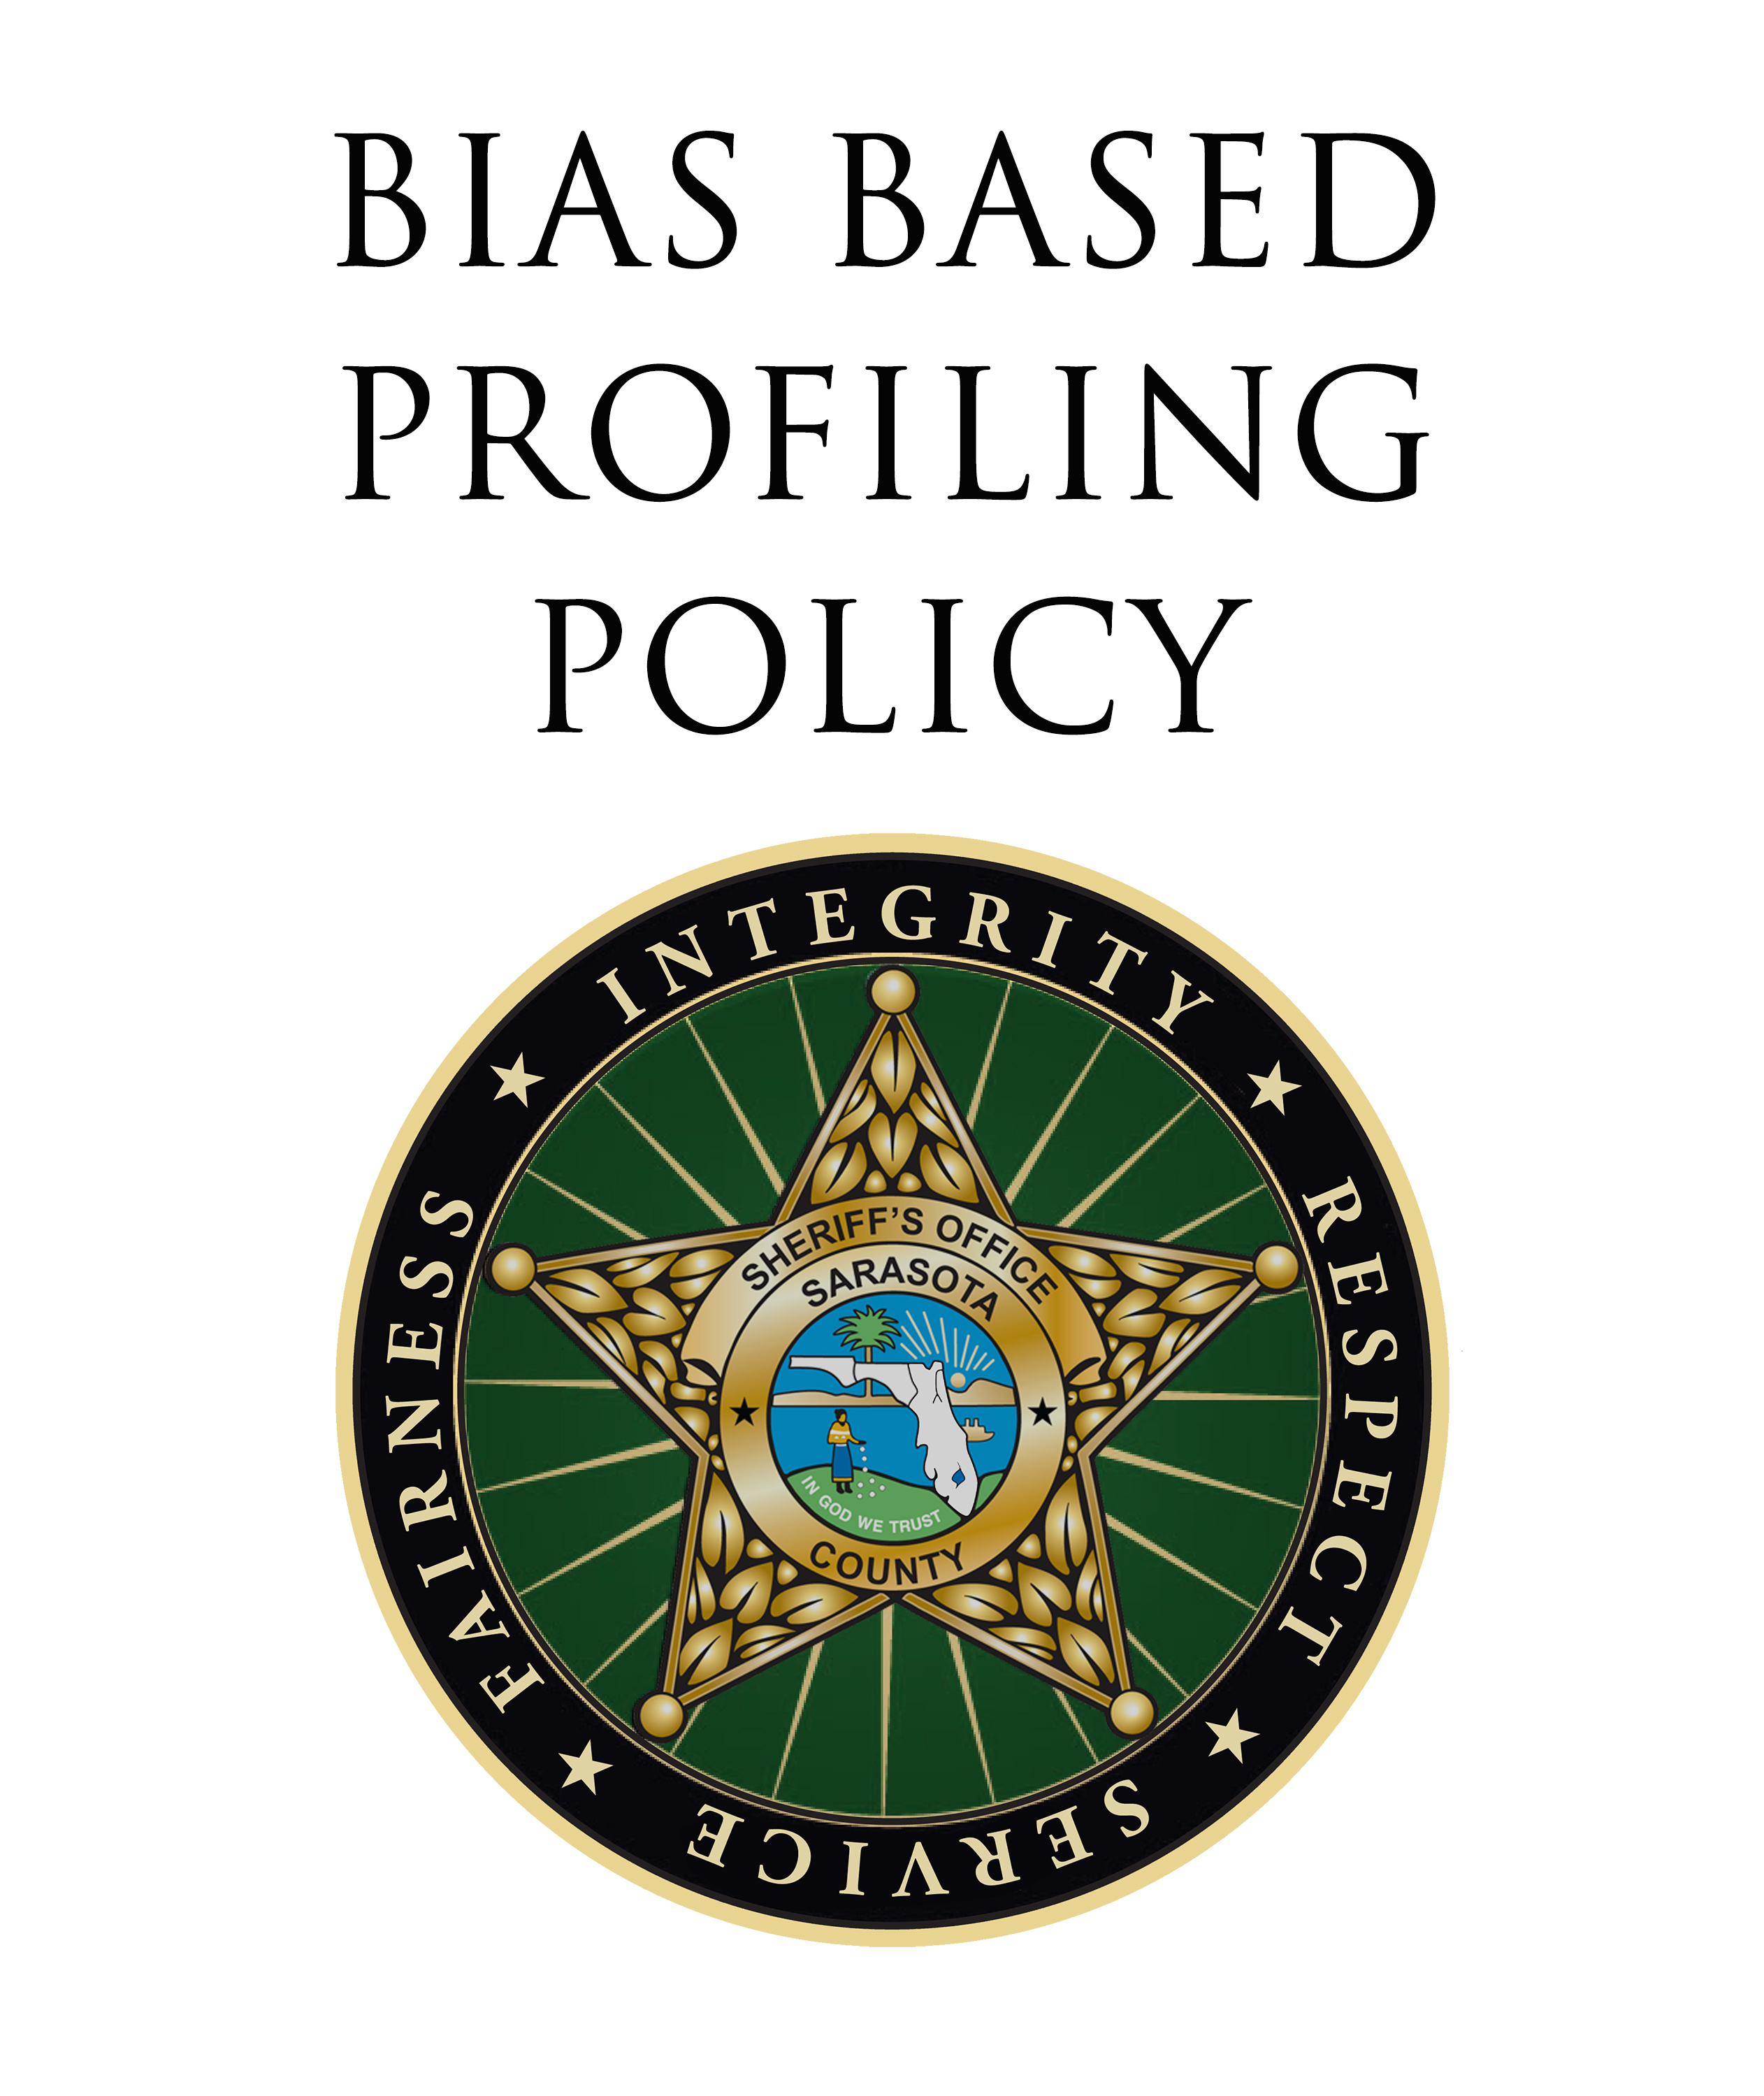 BIas Based Profiling Policy new